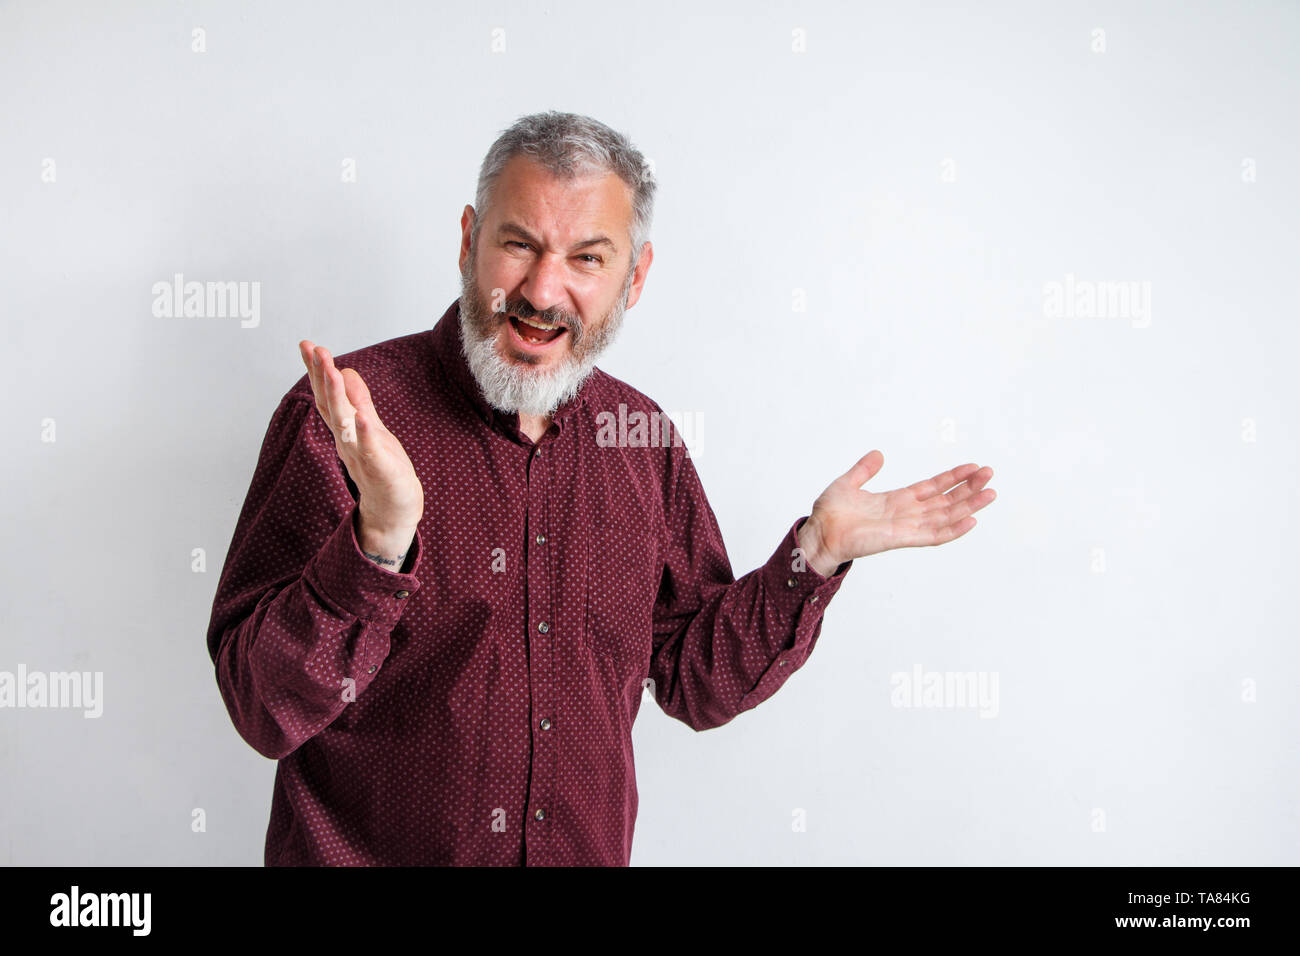 Closeup portrait of angry upset gray bearded man, worker, employee, business man hands in air, open mouth yelling isolated on white background. Negati - Stock Image